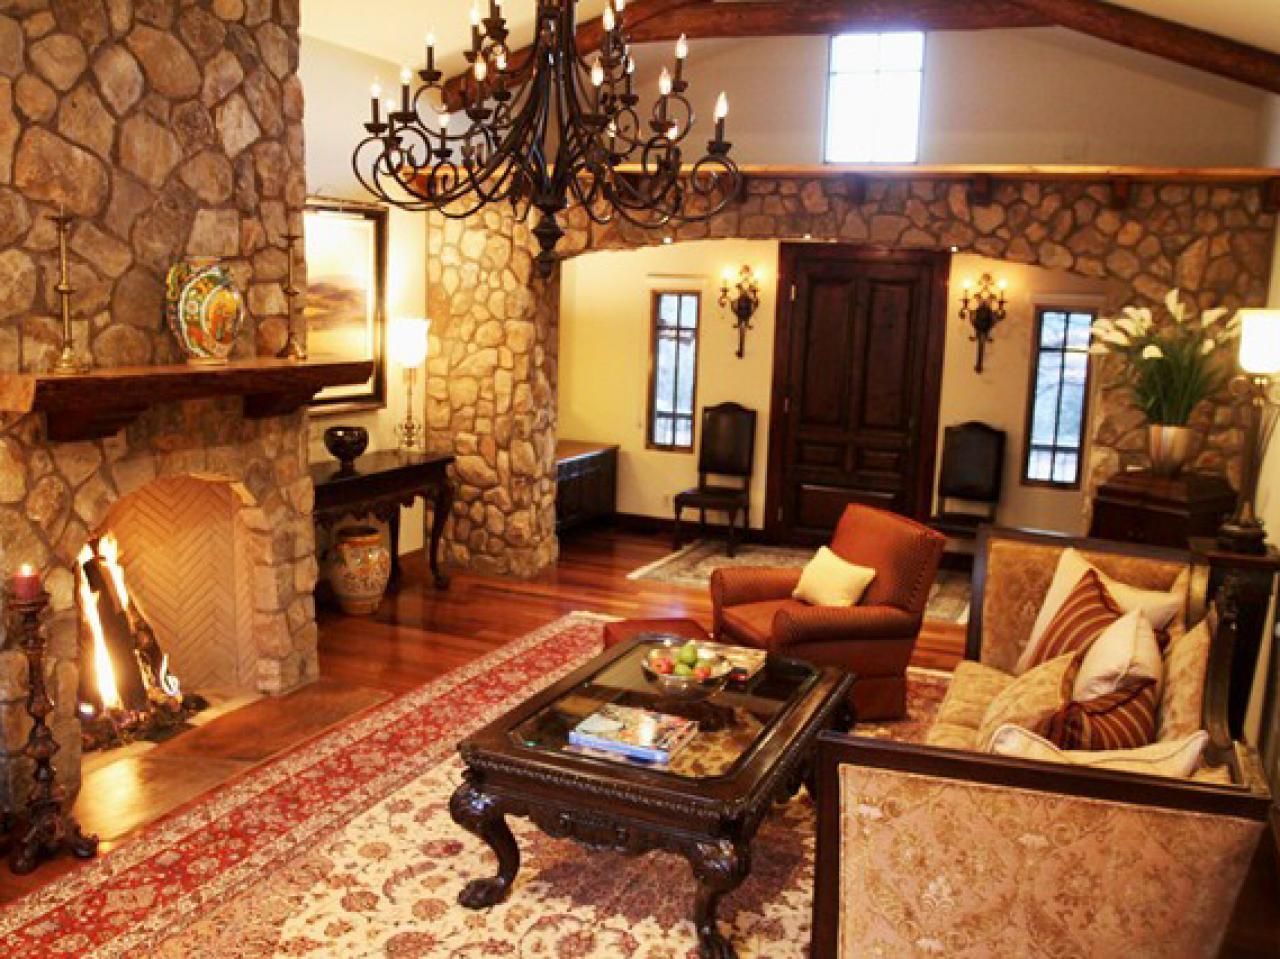 Rustic Living Room With Spanish Style Spanish Living Room Design Living Room With Fireplace Spanish Living Room #traditional #furniture #styles #living #room